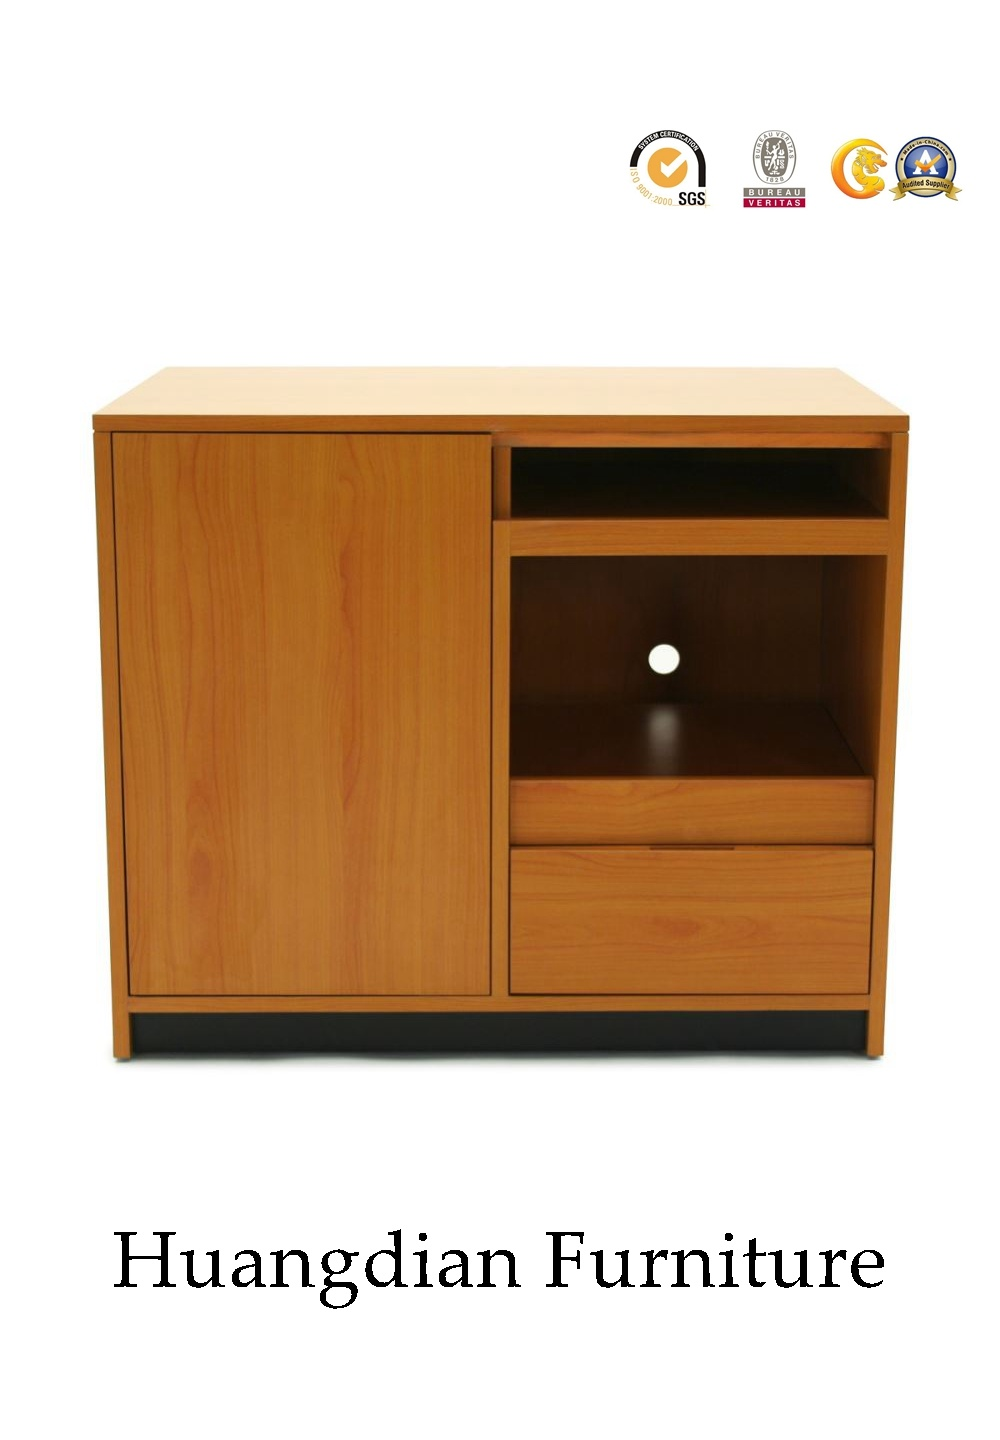 Hot Item Hotel Bedroom Tv Chest Media Cabinet With Mini Bar Hd997